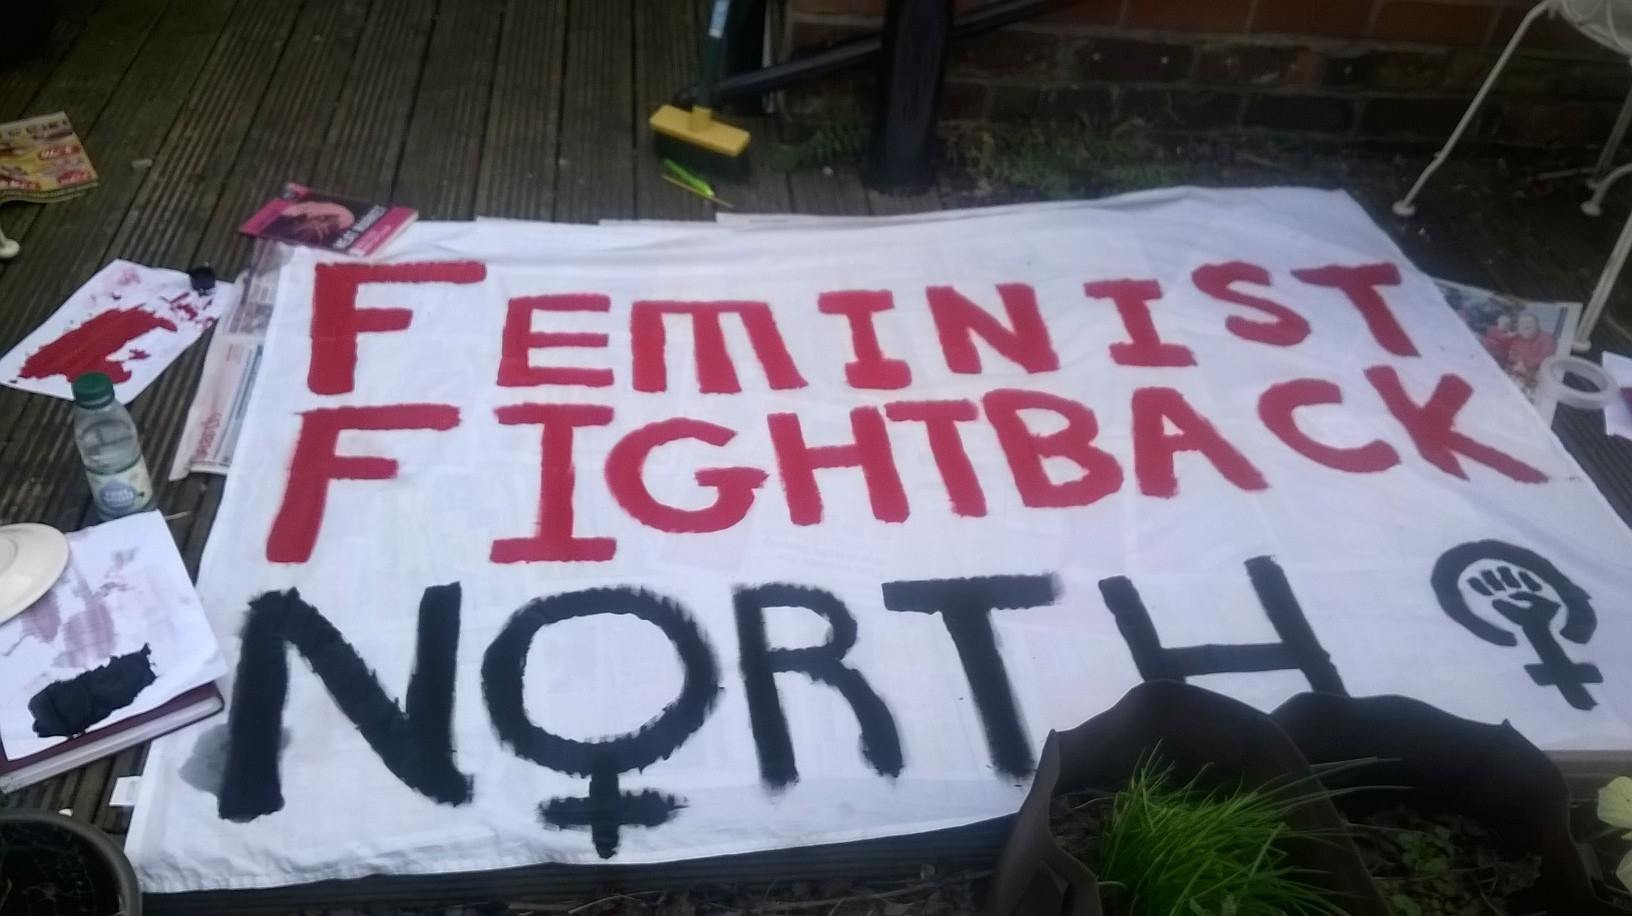 Feminist Fightback North